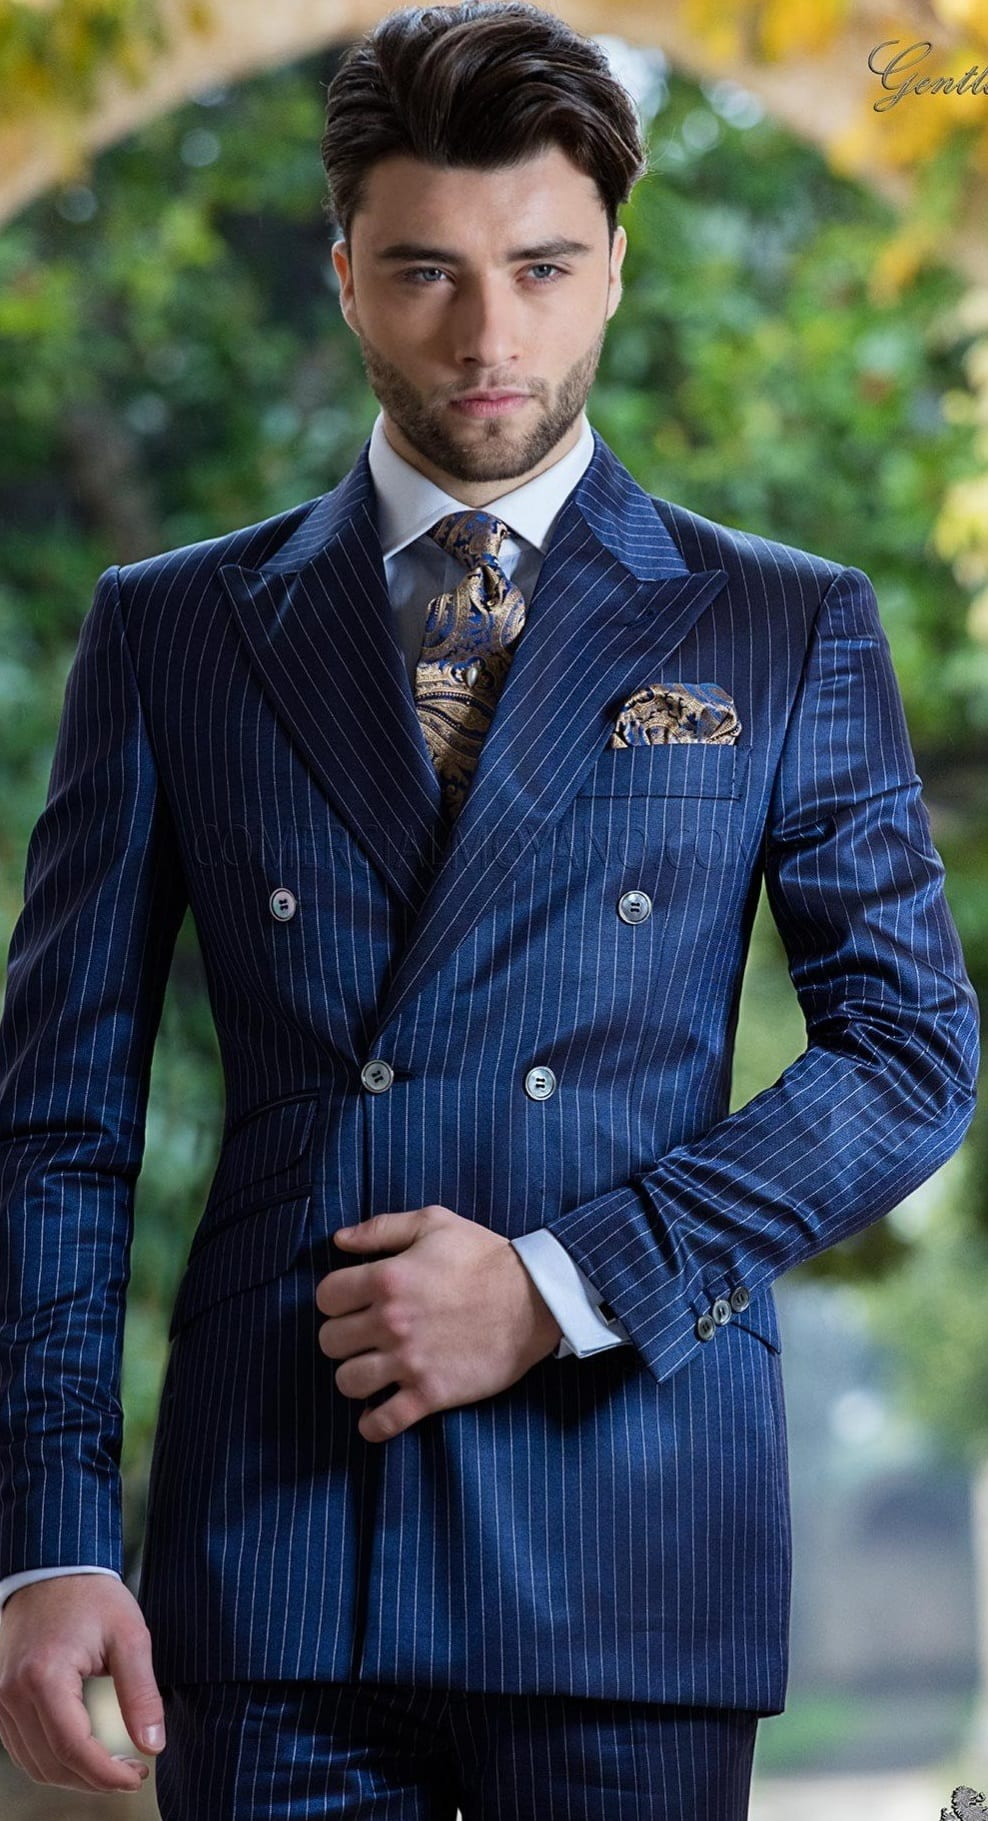 Royal Blue Double Breasted Suit outfit for men